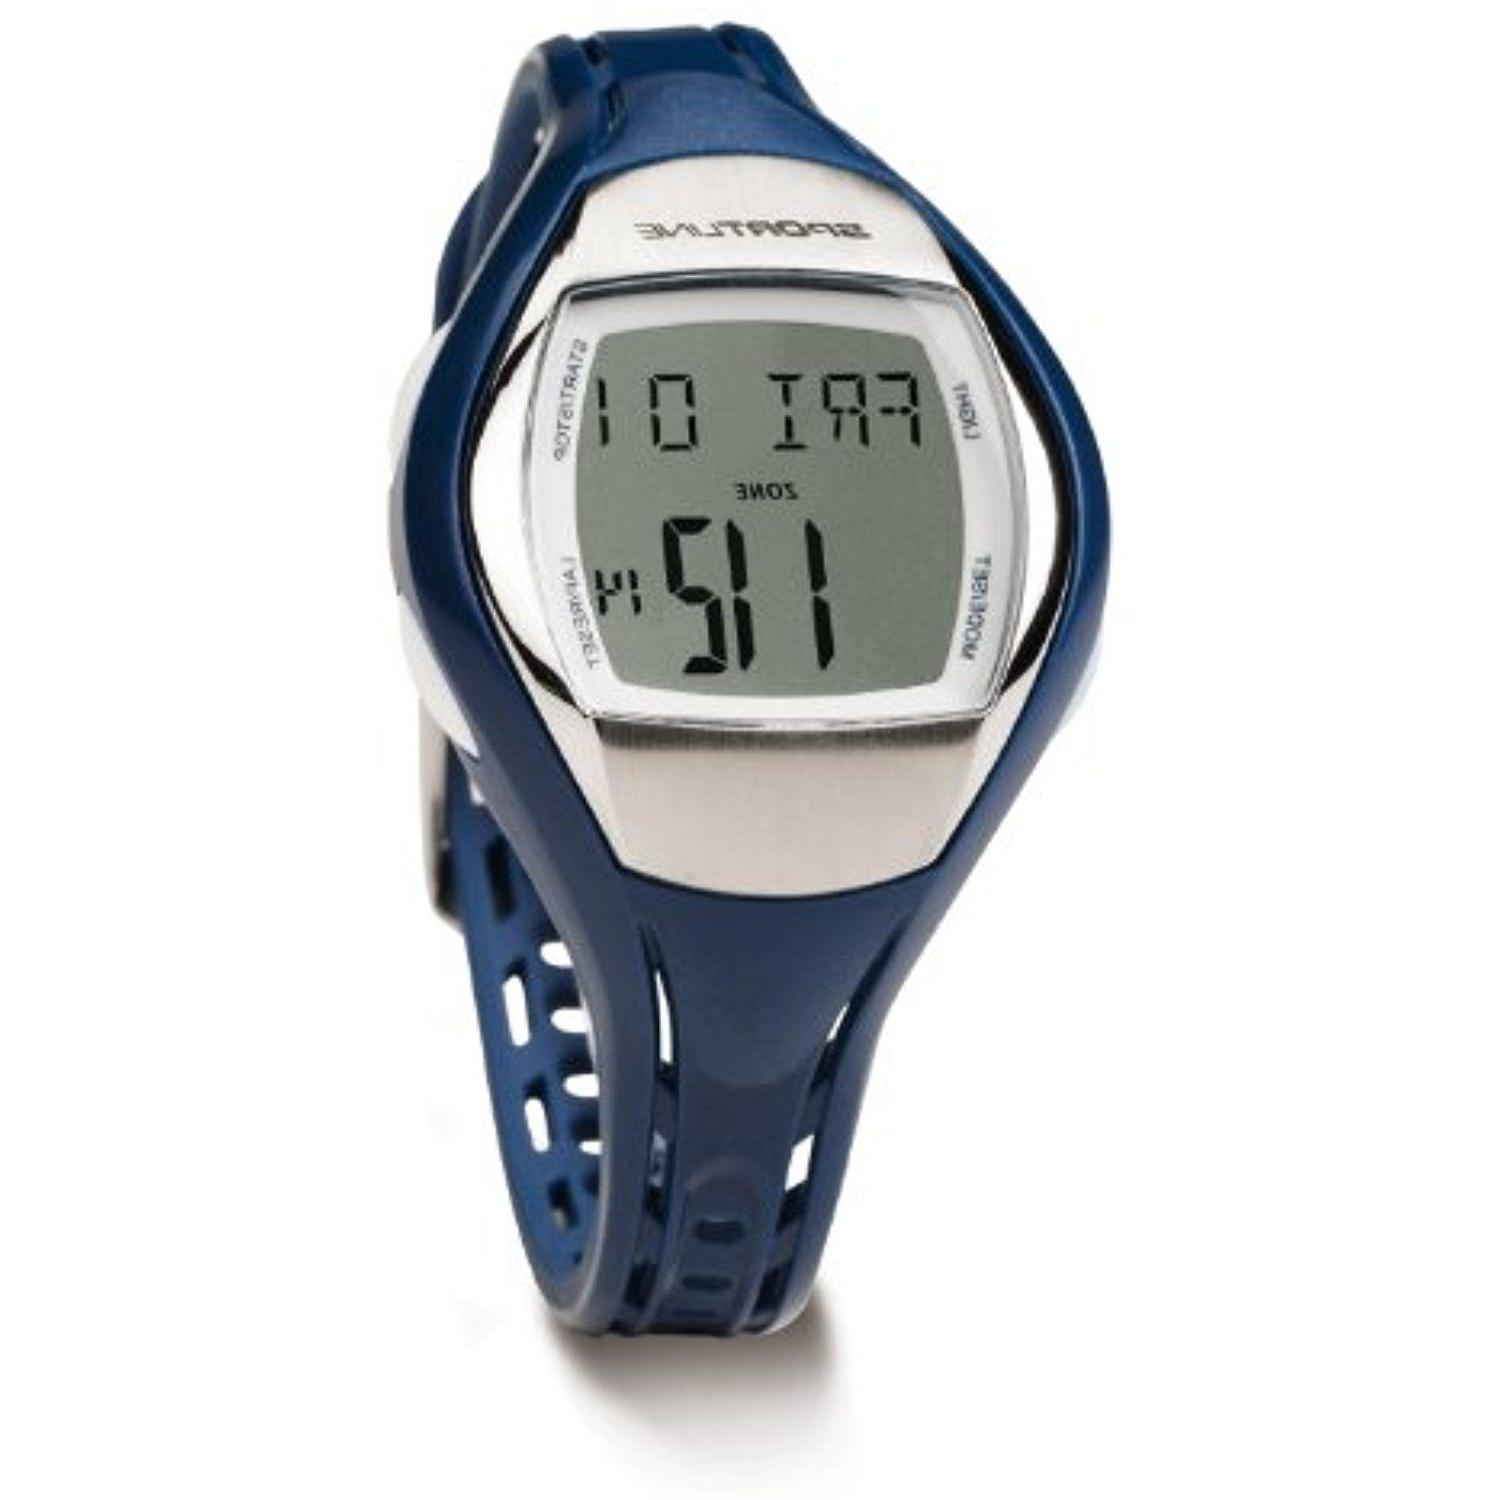 duo dual use heart rate monitor blue